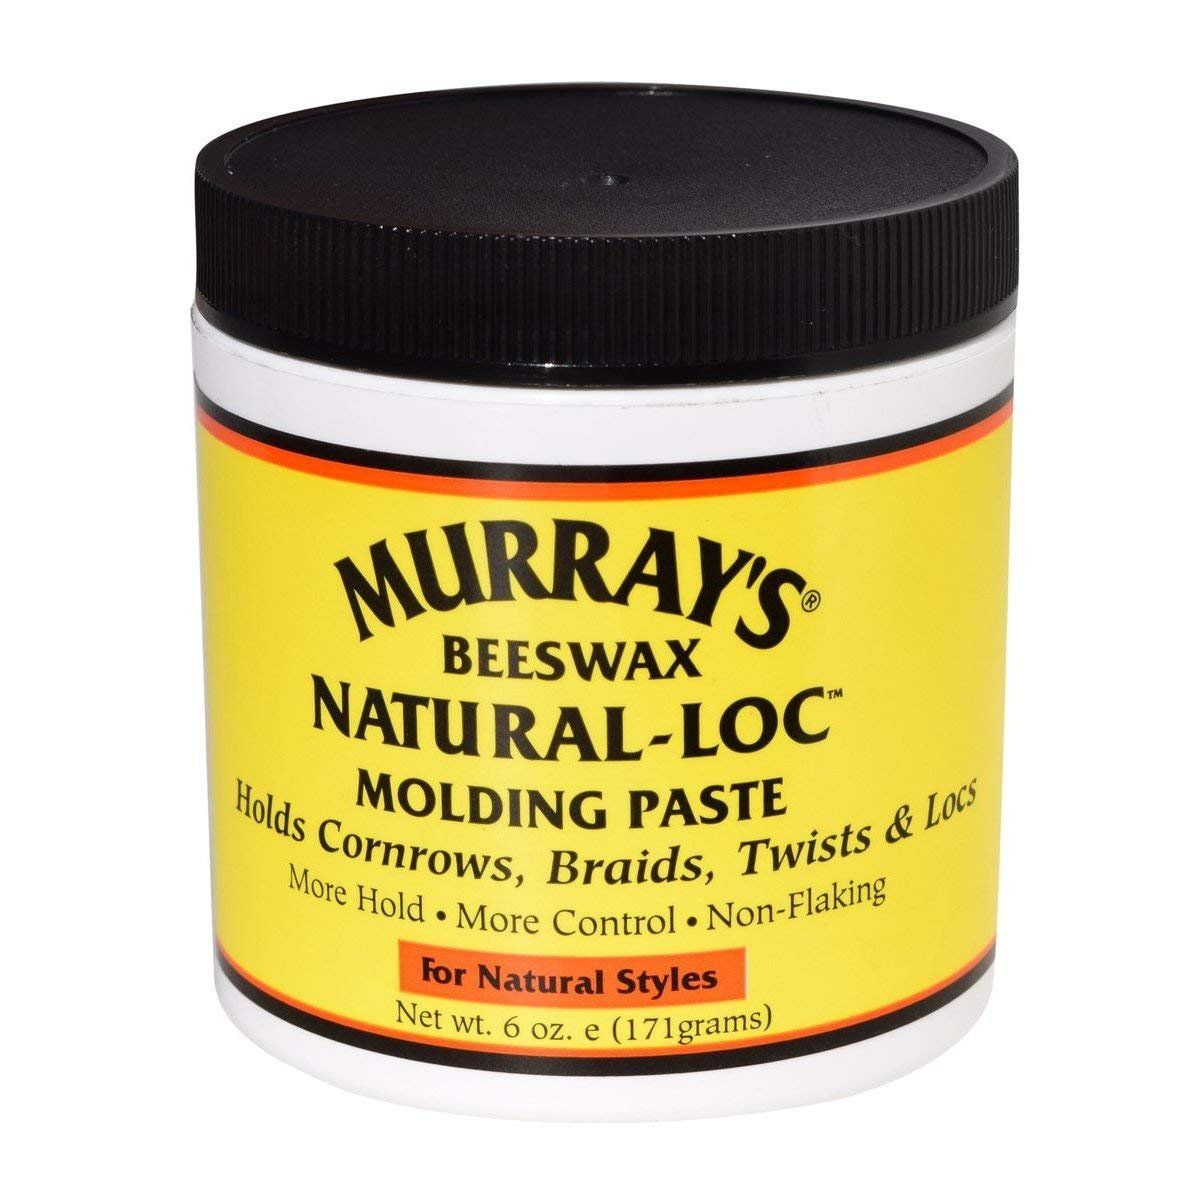 Murray's Natural-Loc Molding Paste